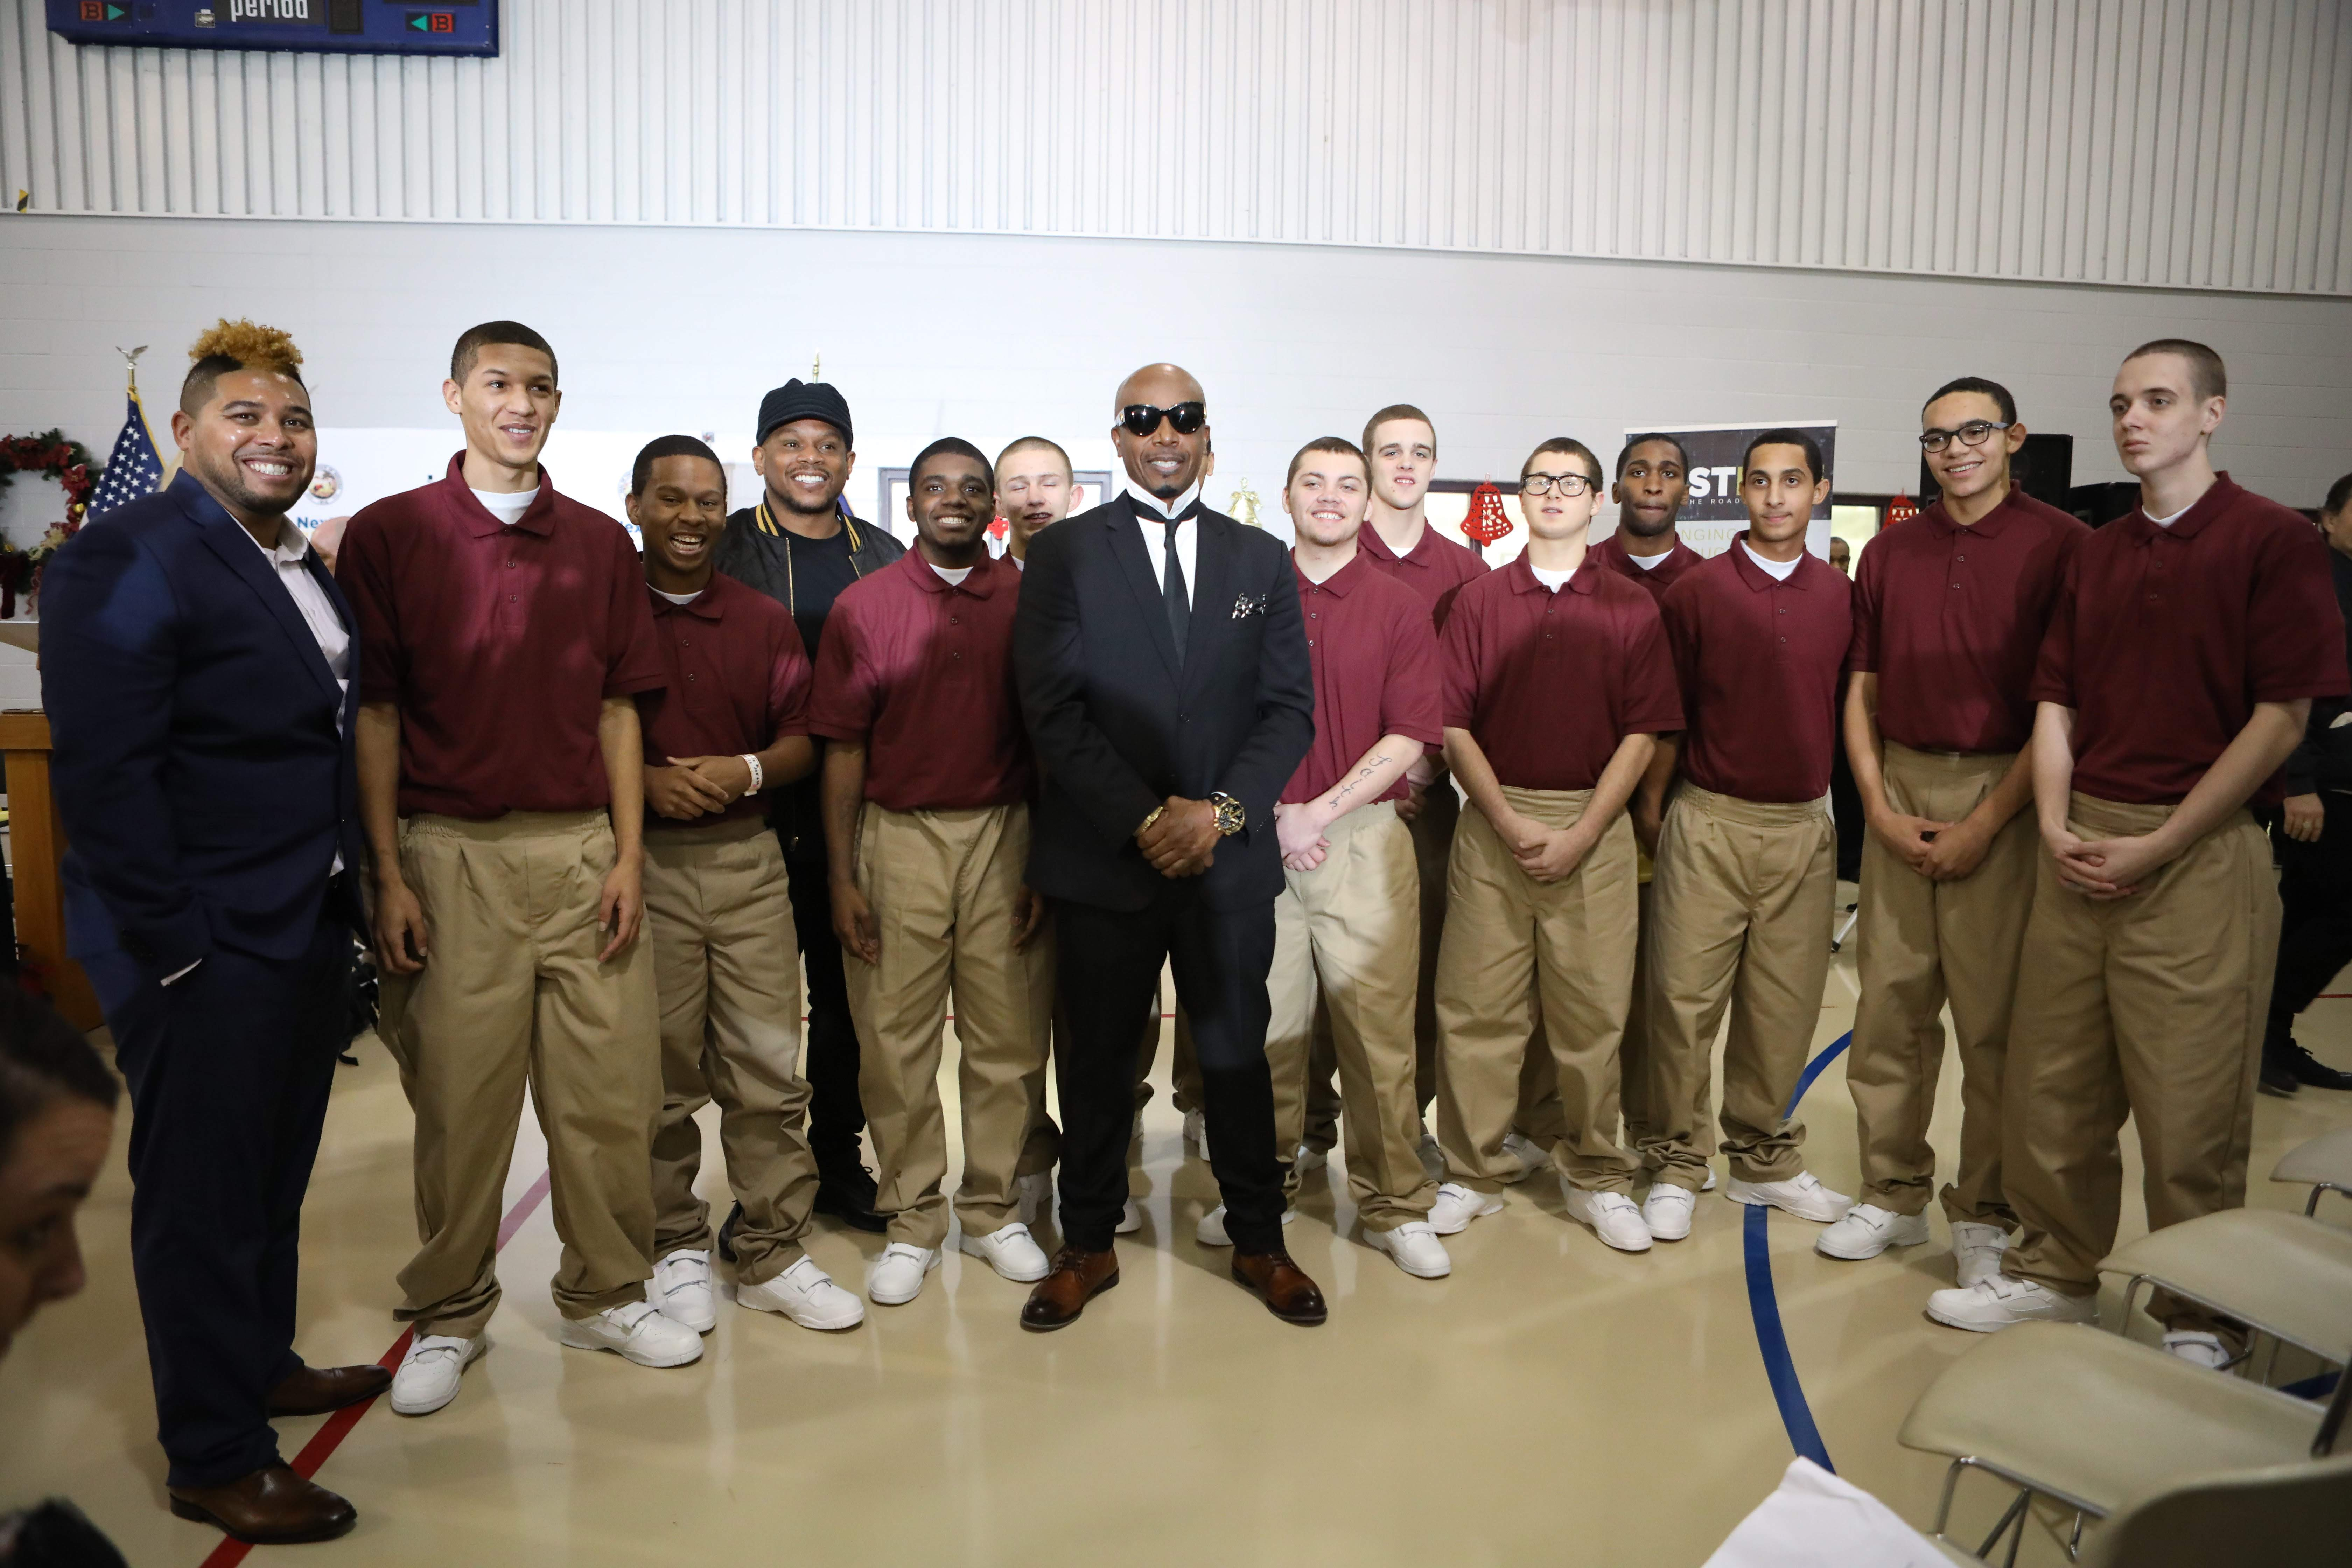 Jason Jones, Sway Calloway and MC Hammer with the new class at the Pendleton Youth Facility